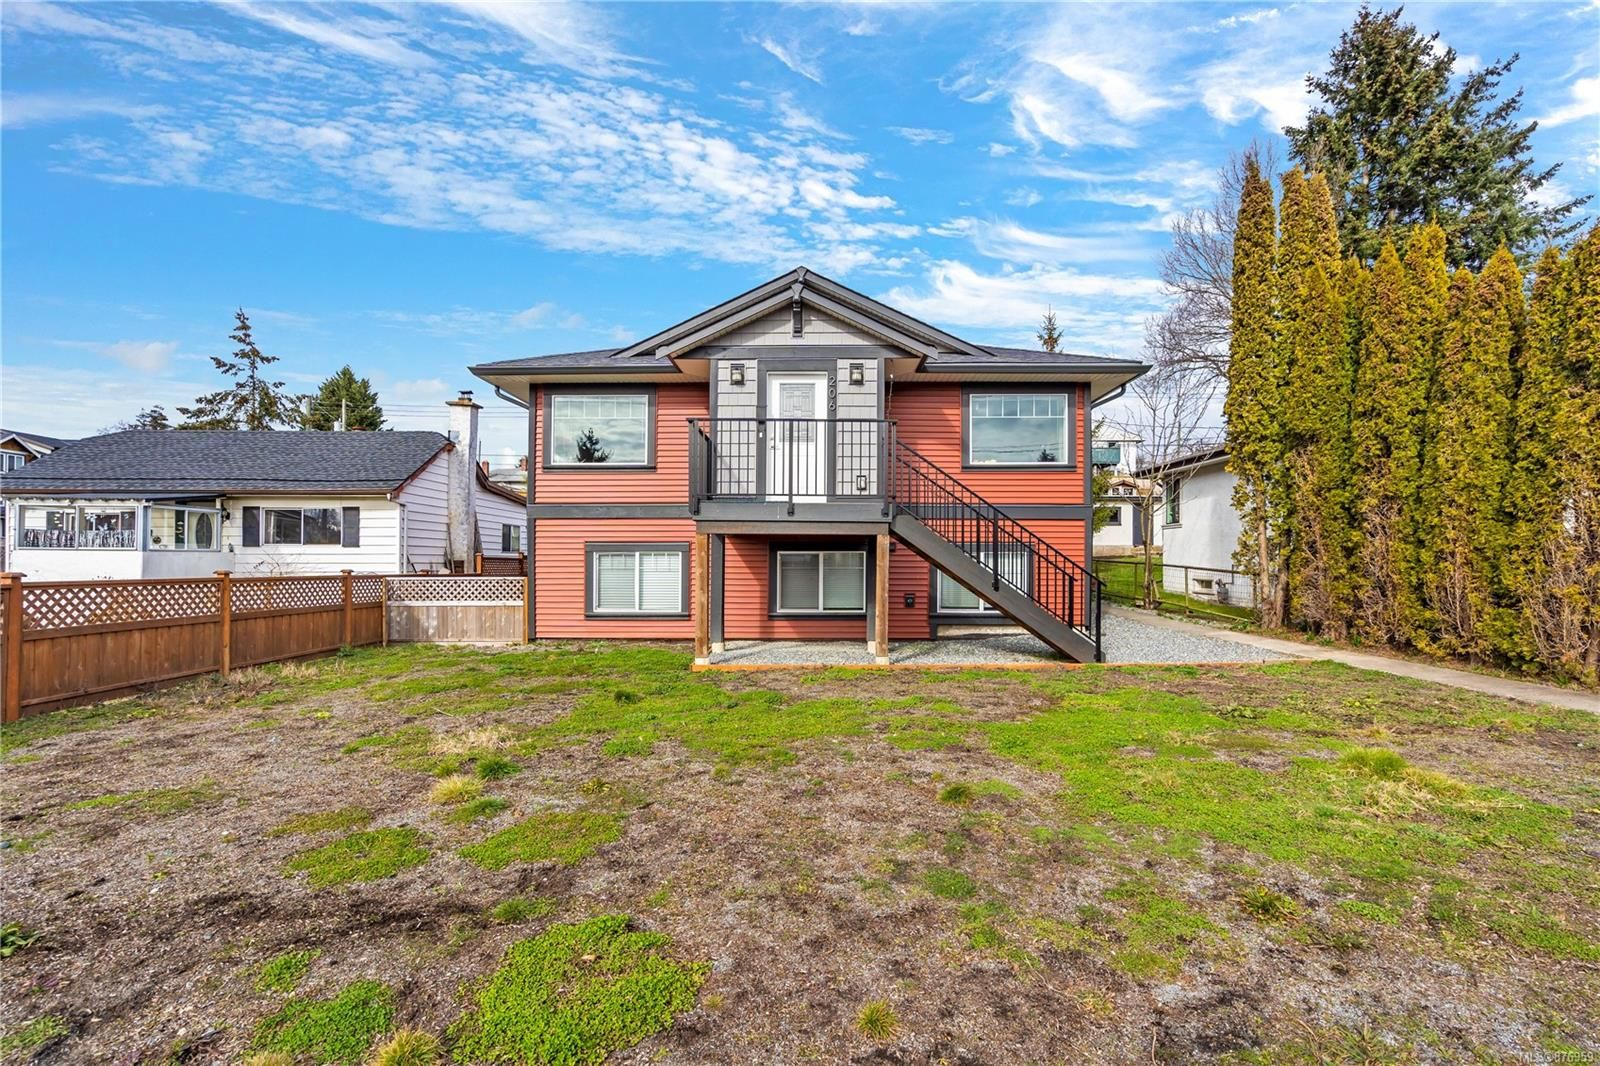 Main Photo: 206 Fifth St in : Na University District House for sale (Nanaimo)  : MLS®# 876959